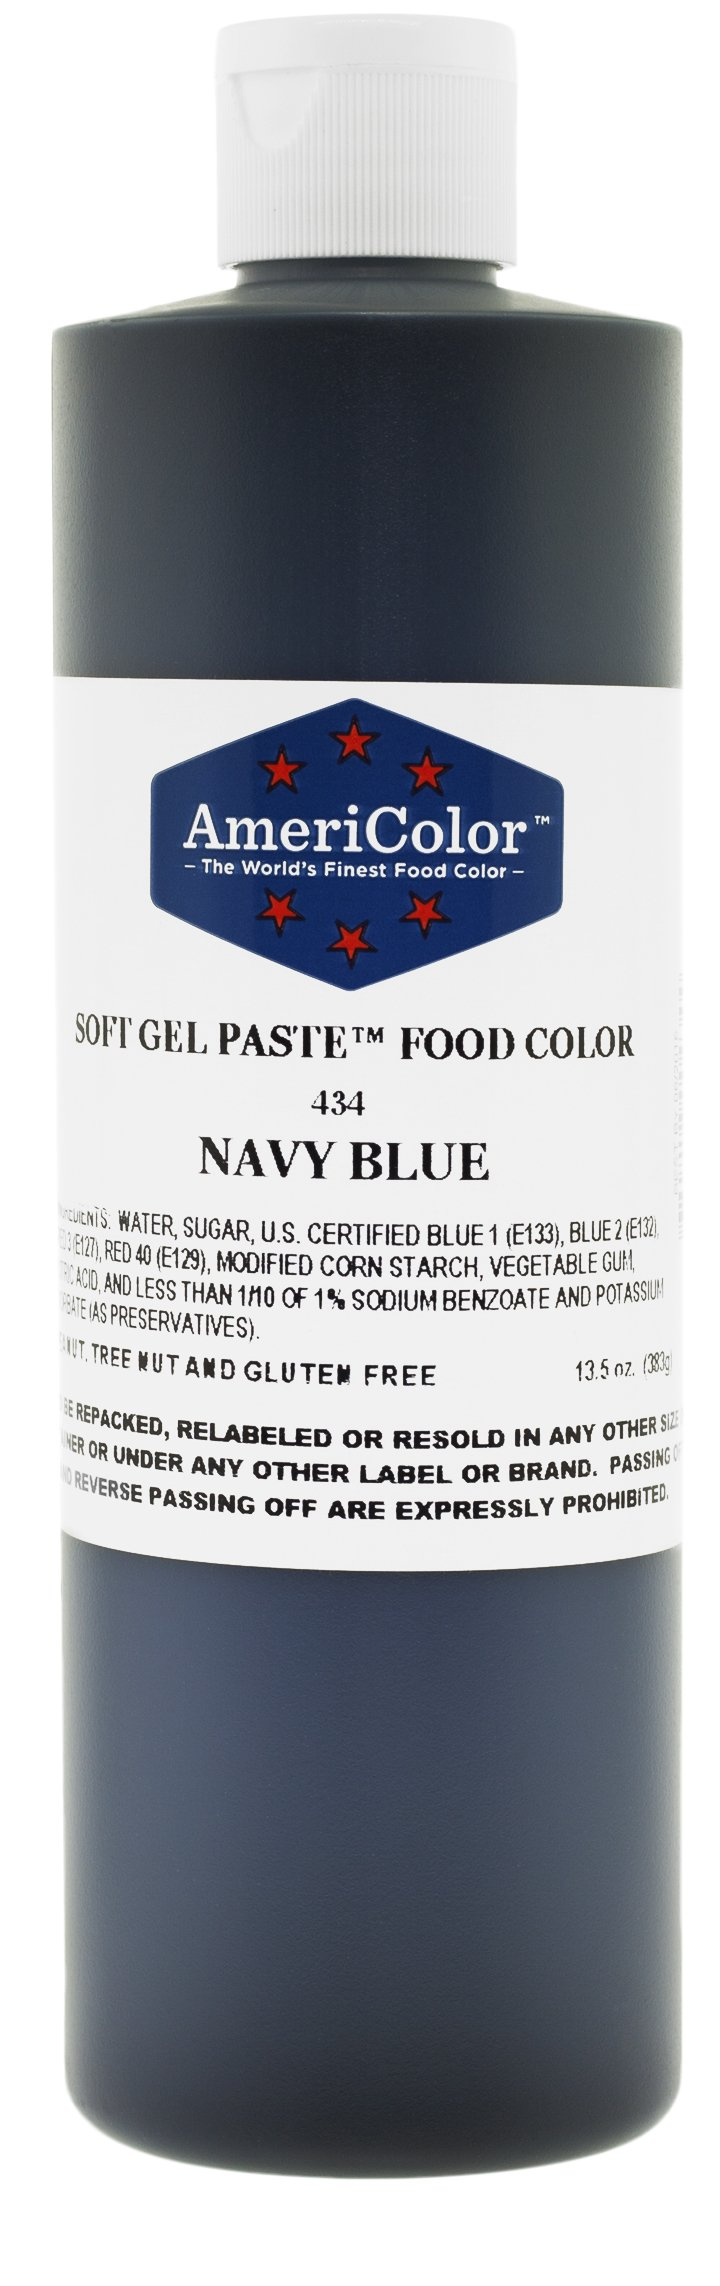 AmeriColor Food Coloring, Navy Blue Soft Gel Paste, 13.5 Ounce